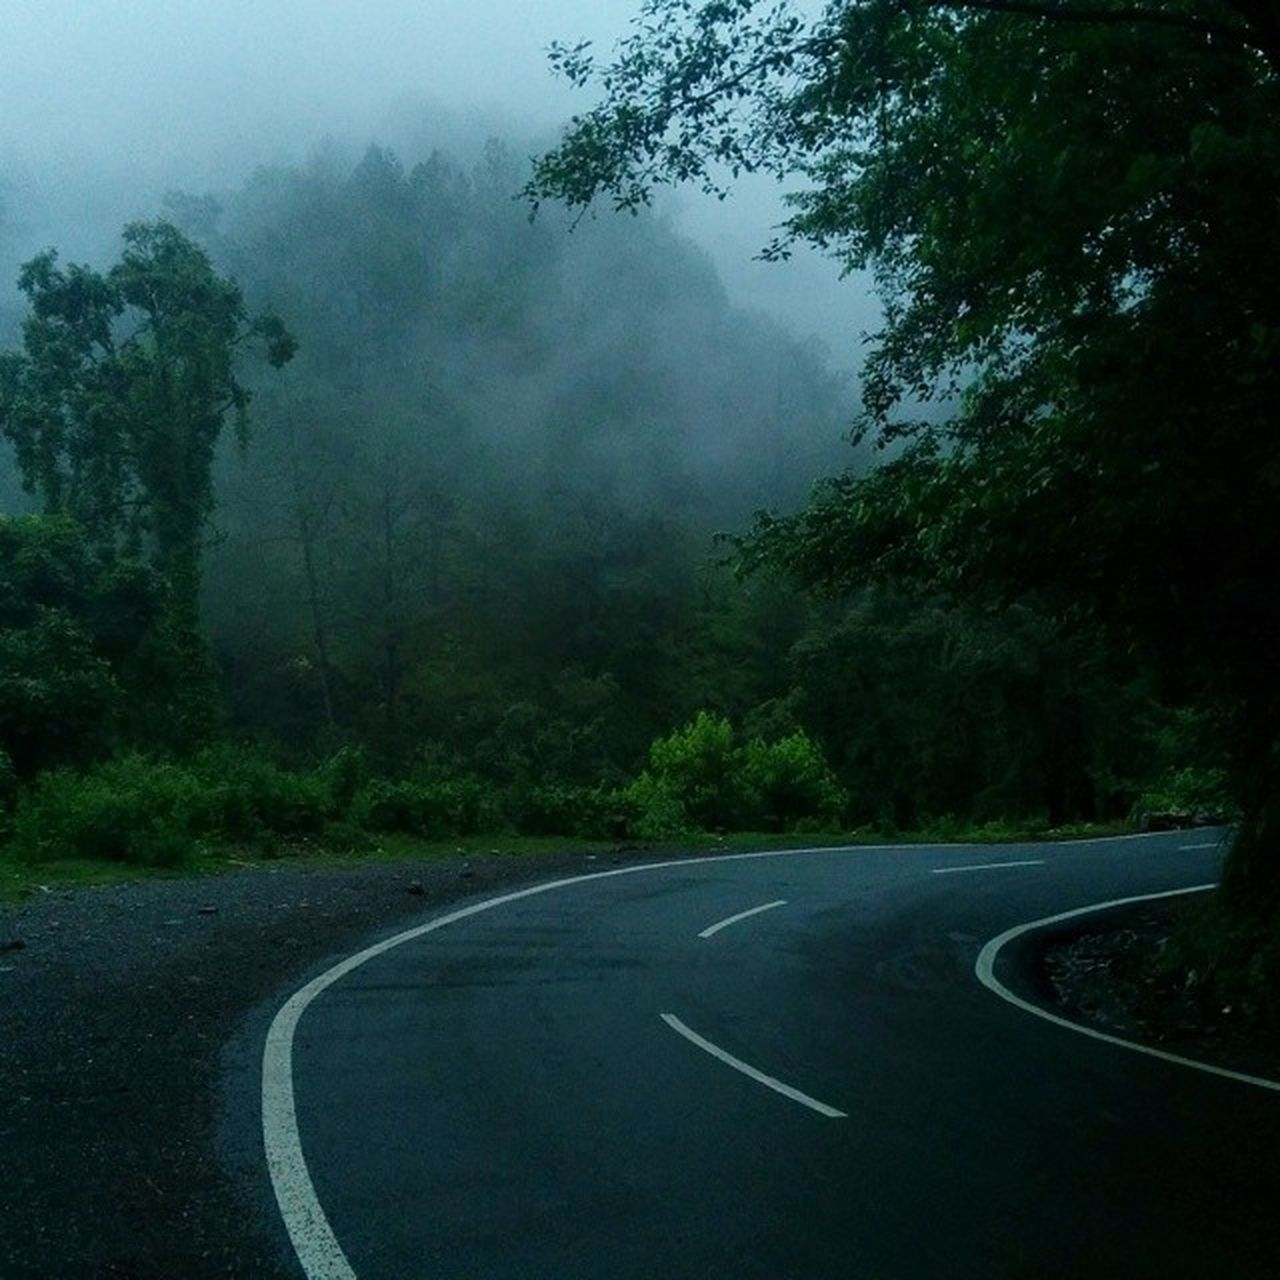 EMPTY COUNTRY ROAD ALONG TREES IN FOREST DURING FOGGY WEATHER